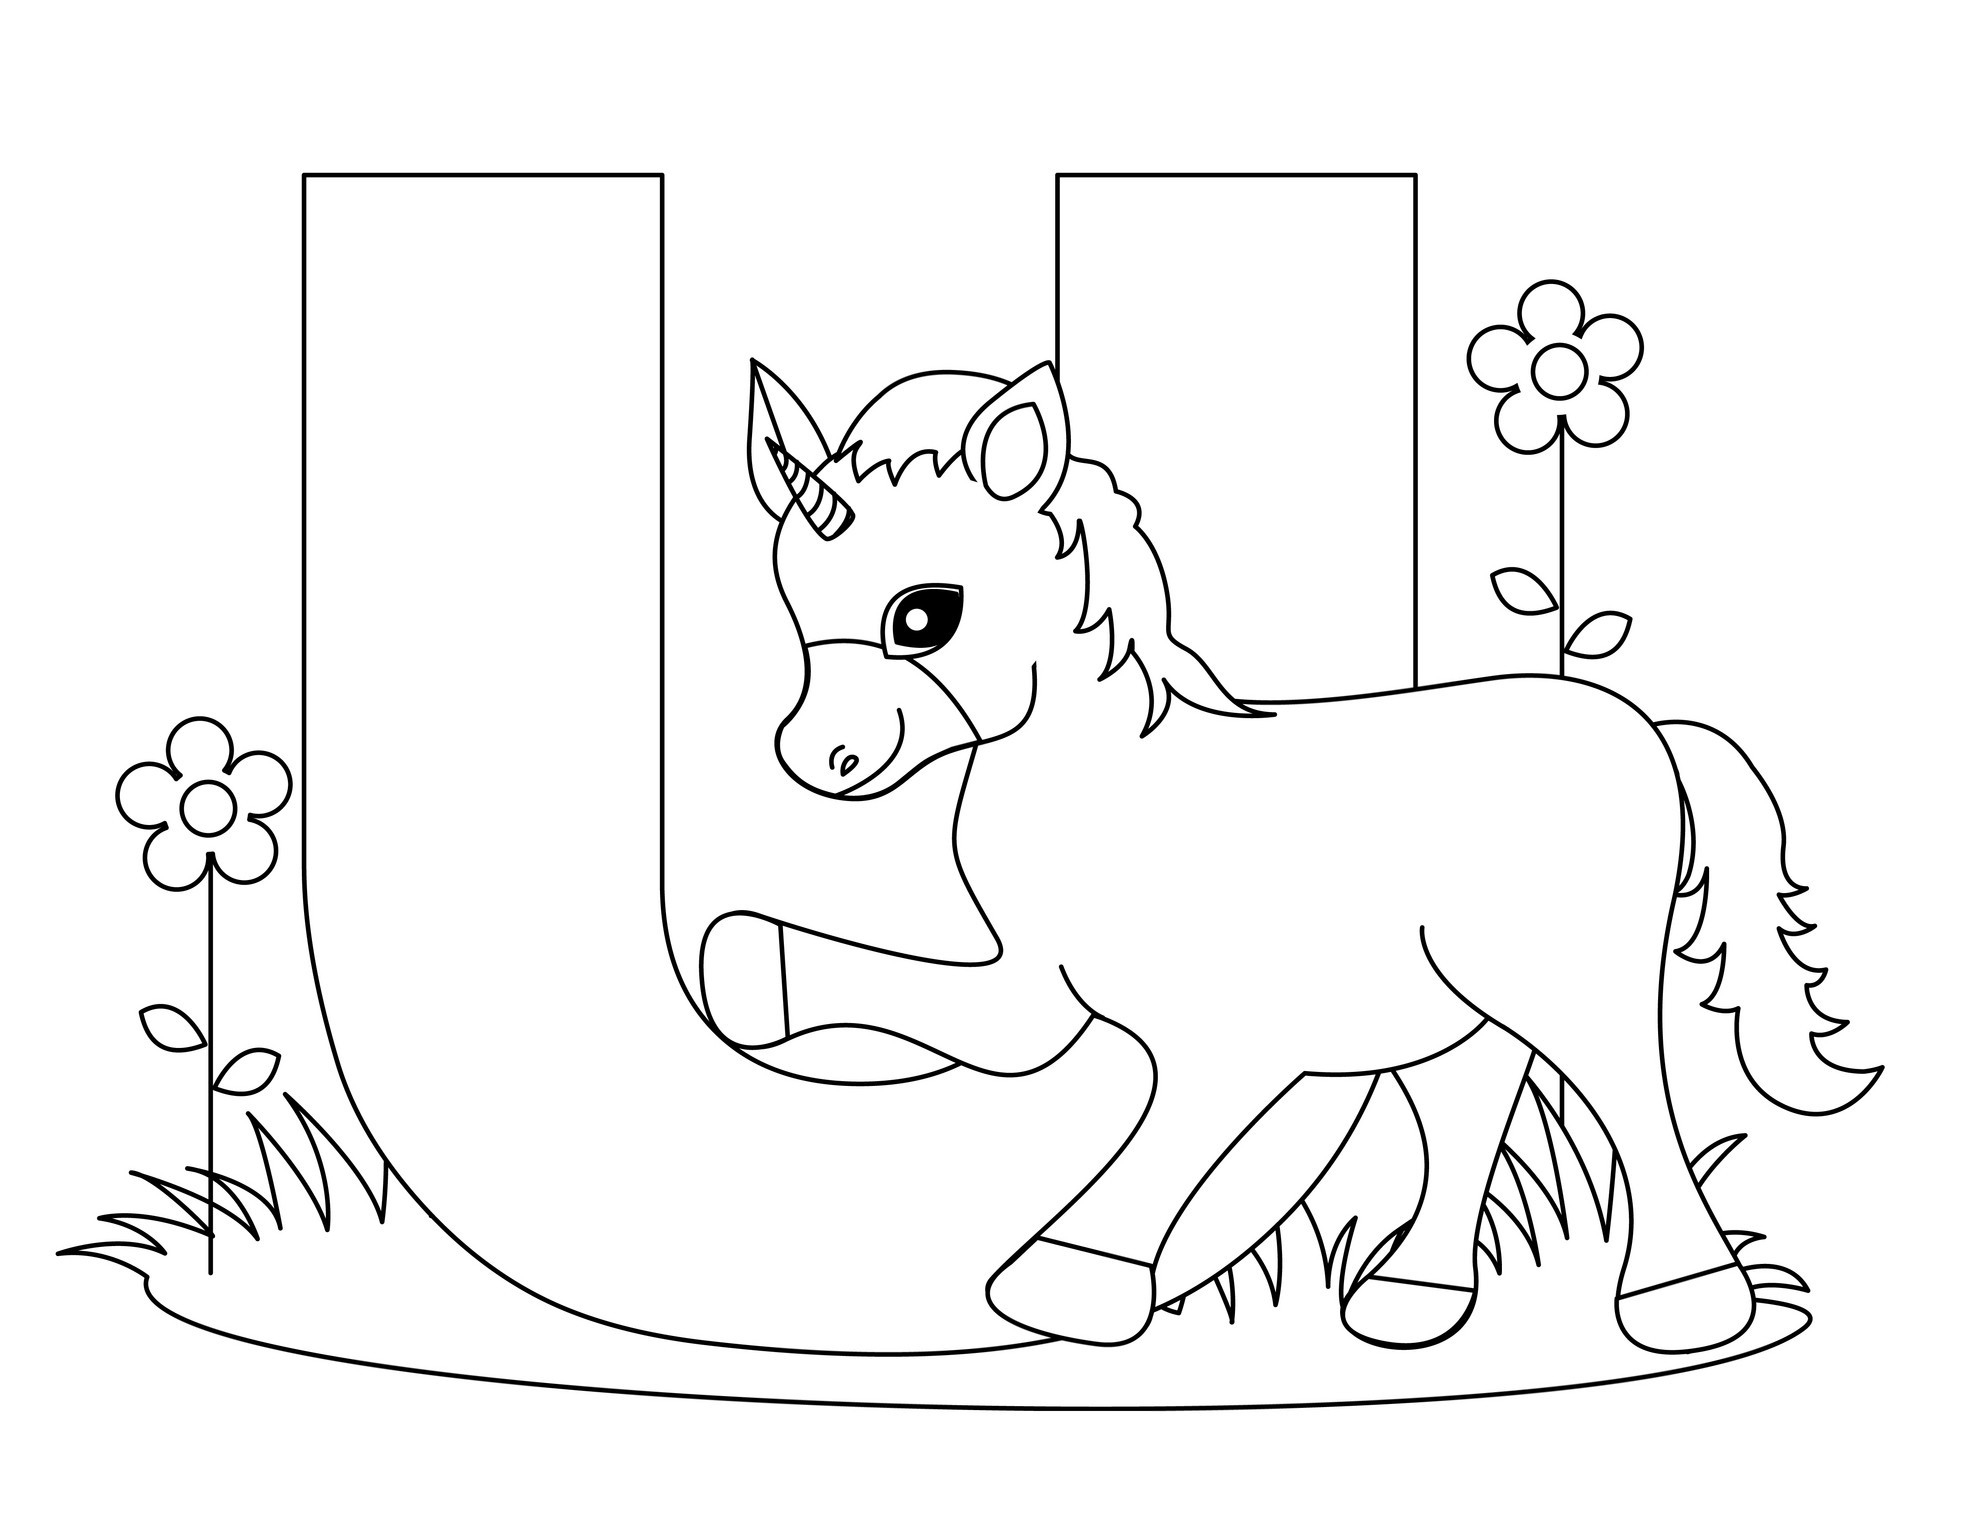 alfabet coloring pages - photo#5